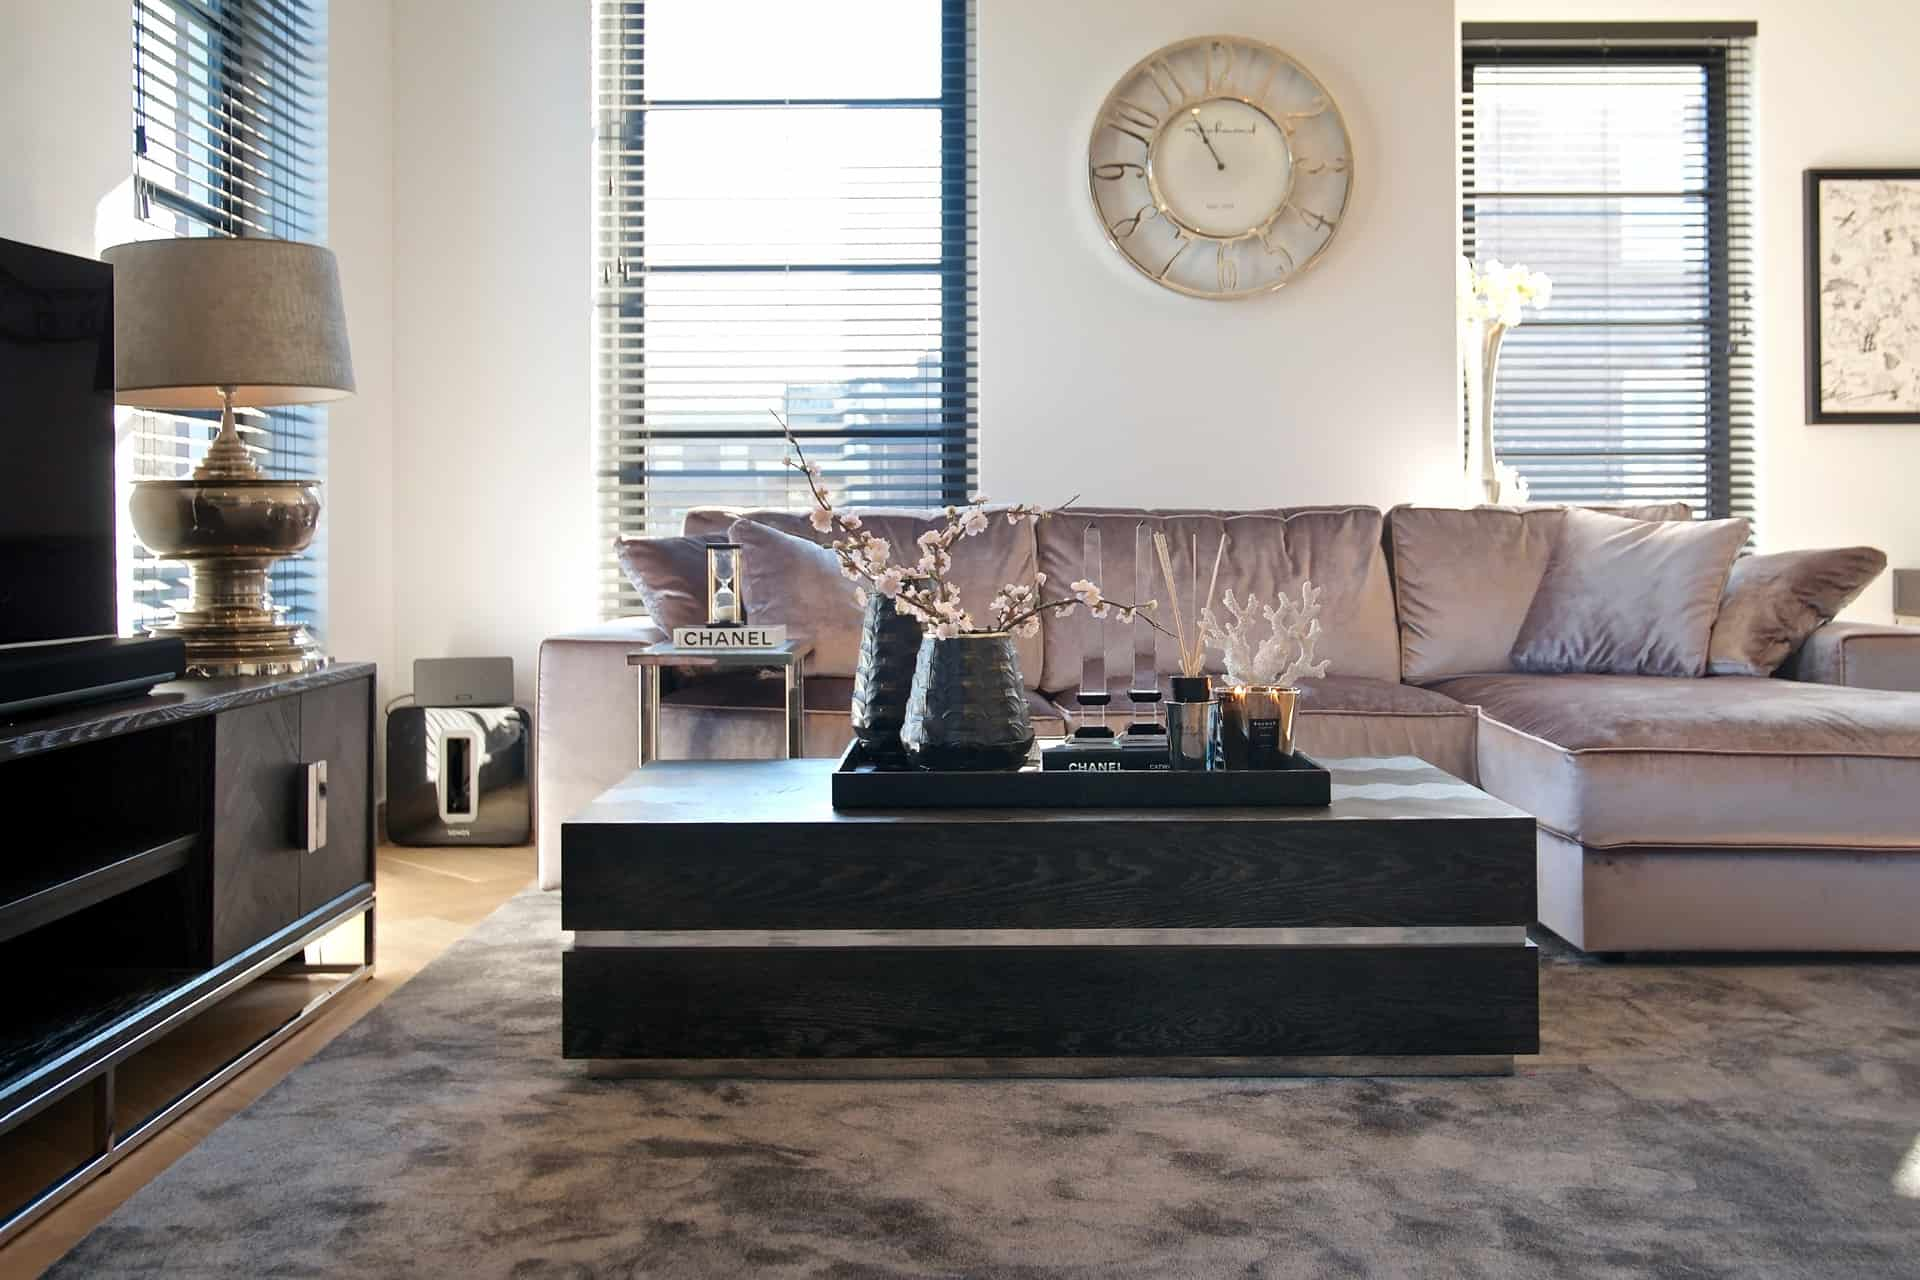 Blackbone by Richmond Interior